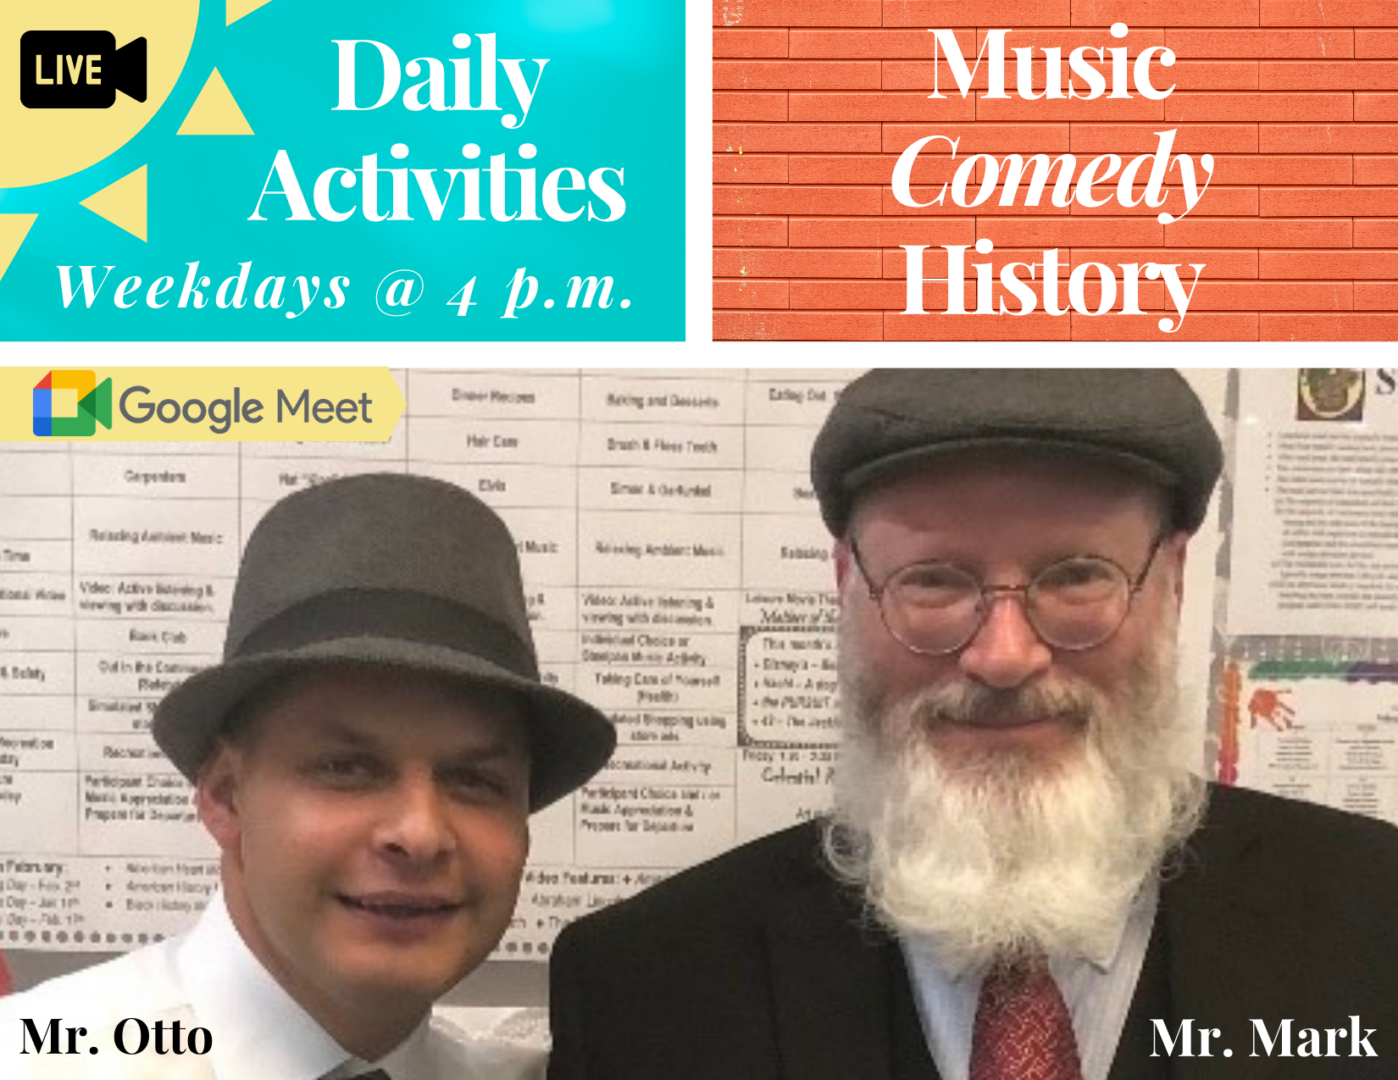 Daily Activities Live - Website Image